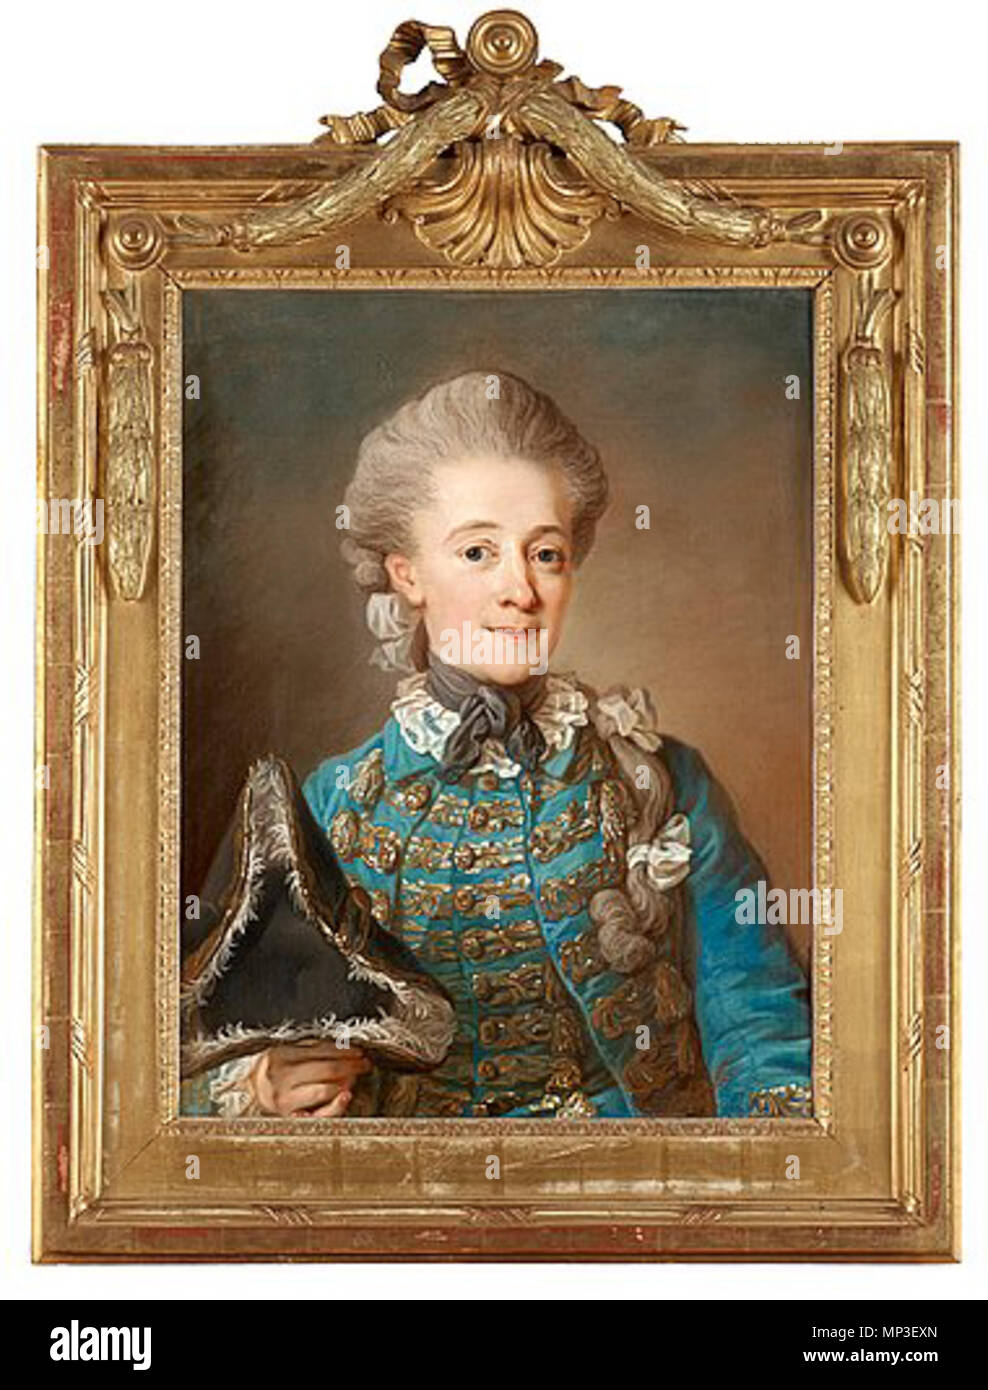 . Baroness Ulrica Cedercreutz 1730-84 . 1770-talet.    Gustaf Lundberg  (1695–1786)     Alternative names Lundberg; Gustav Lundberg  Description Swedish portrait painter and pastellist  Date of birth/death 17 August 1695 18 March 1786  Location of birth/death Stockholm Stockholm  Work period from 1720s until 1770s  Work location Paris, Stockholm  Authority control  : Q838499 VIAF: 25745822 ISNI: 0000 0000 6686 454X ULAN: 500027182 LCCN: n2006086273 WGA: LUNDBERG, Gustaf WorldCat 1212 Ulrica Cedercreutz - Stock Image